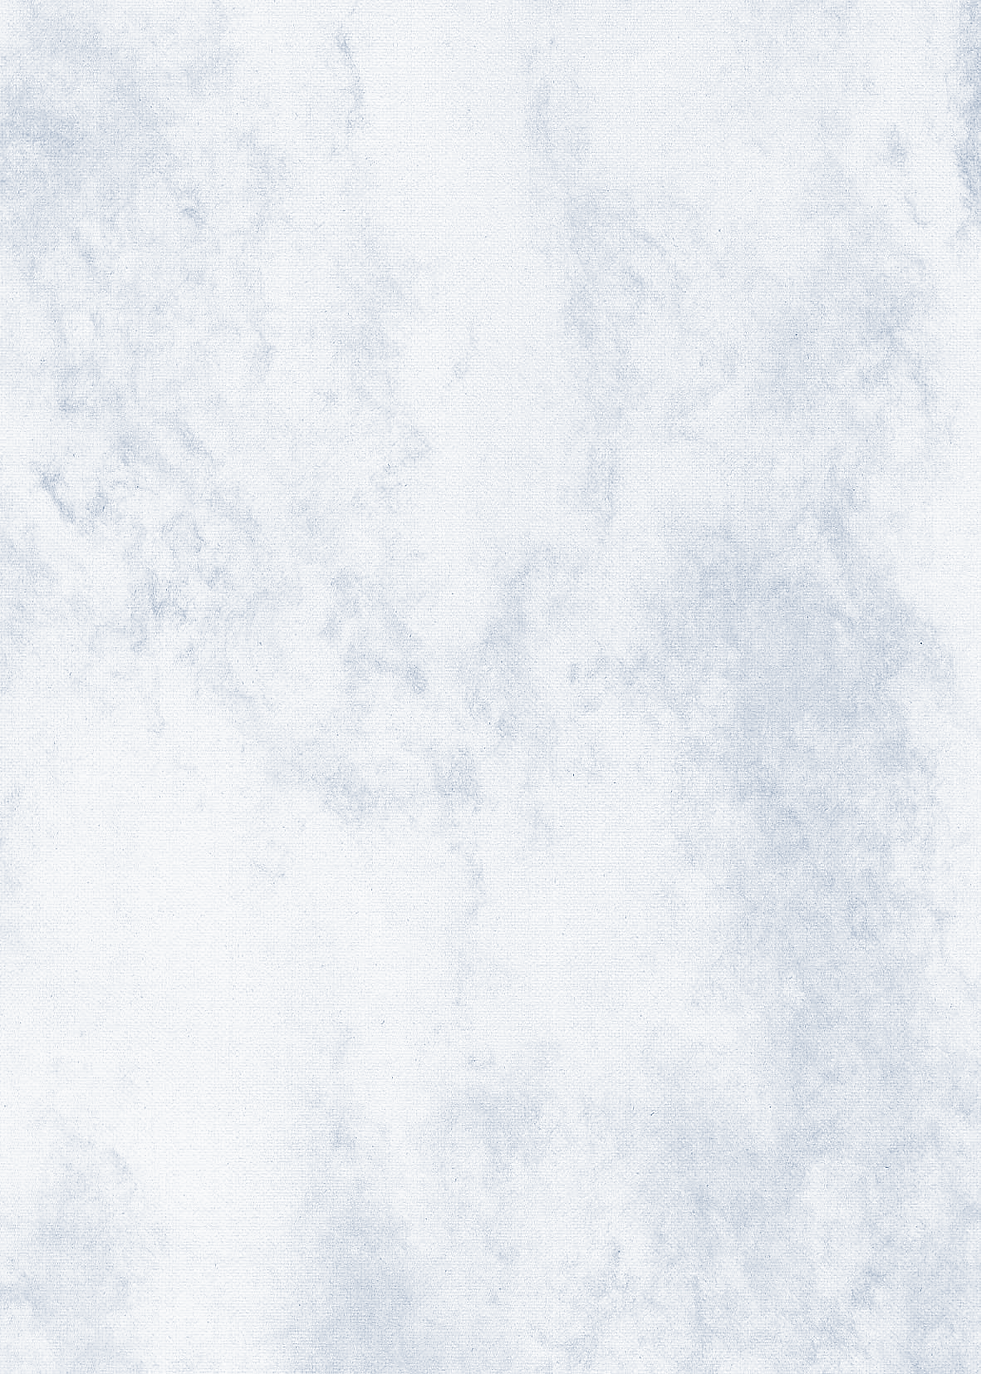 paper-background-06_gris.png